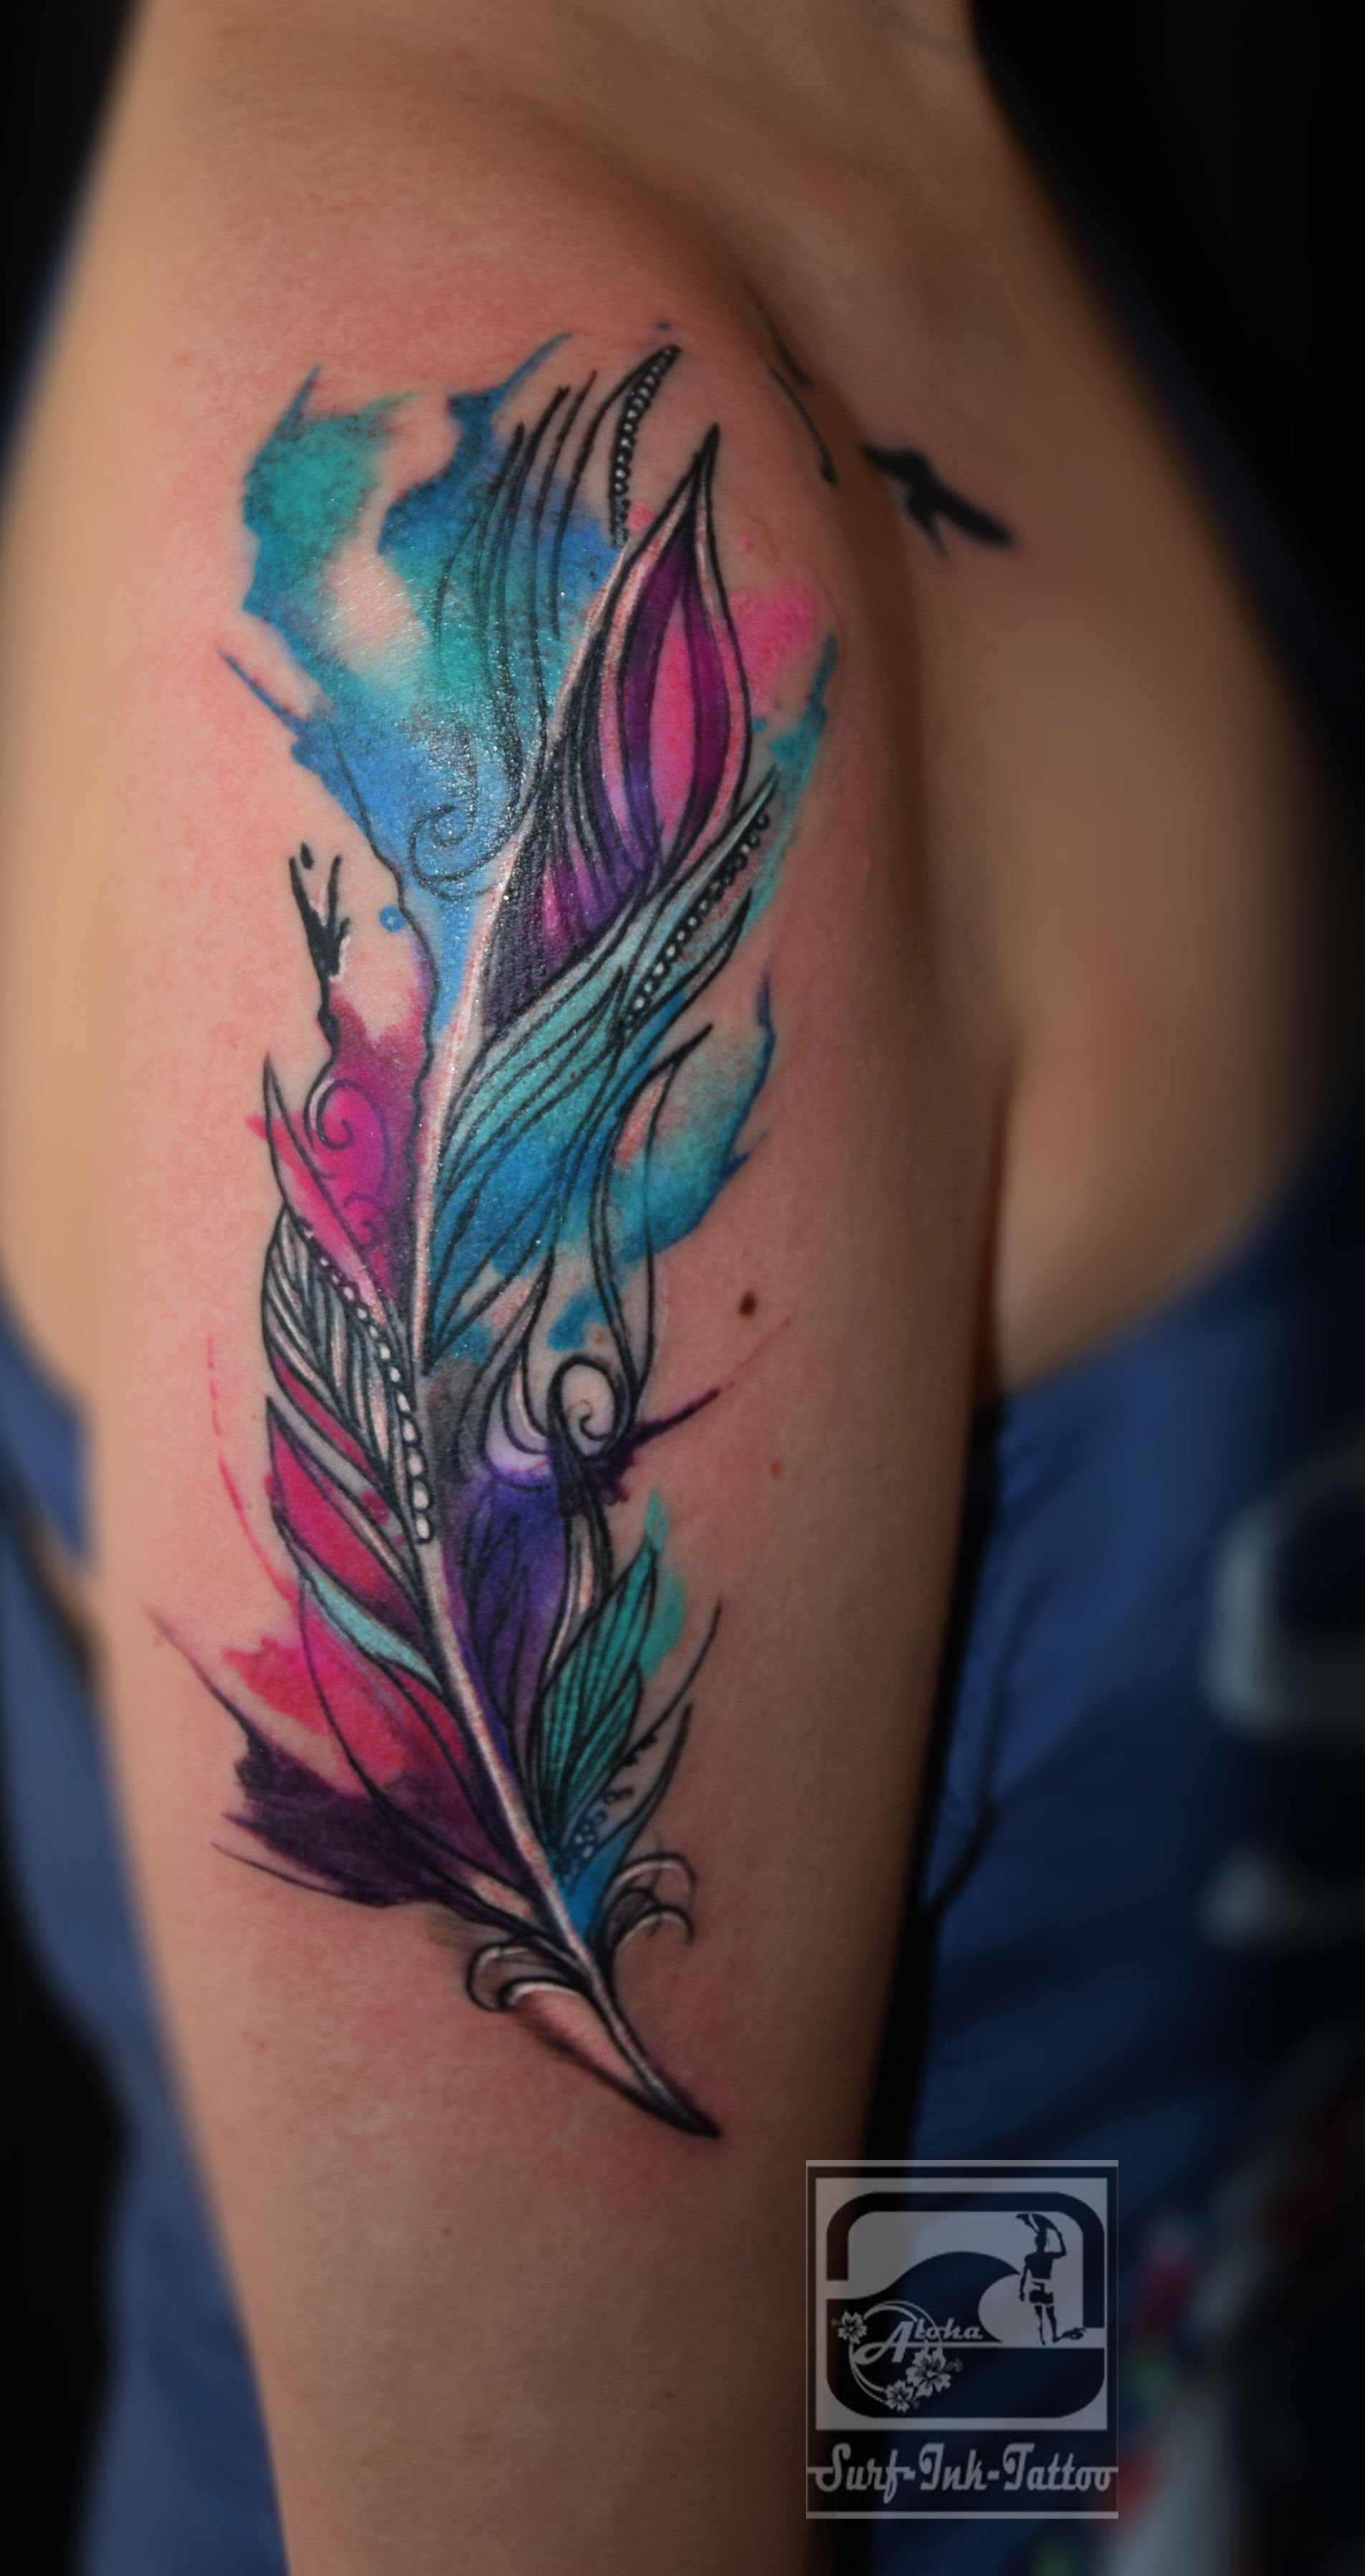 Tattoo Aquarell Watercolour Feder Watercolour Tattoo Watercolor Tattoo Aquarell